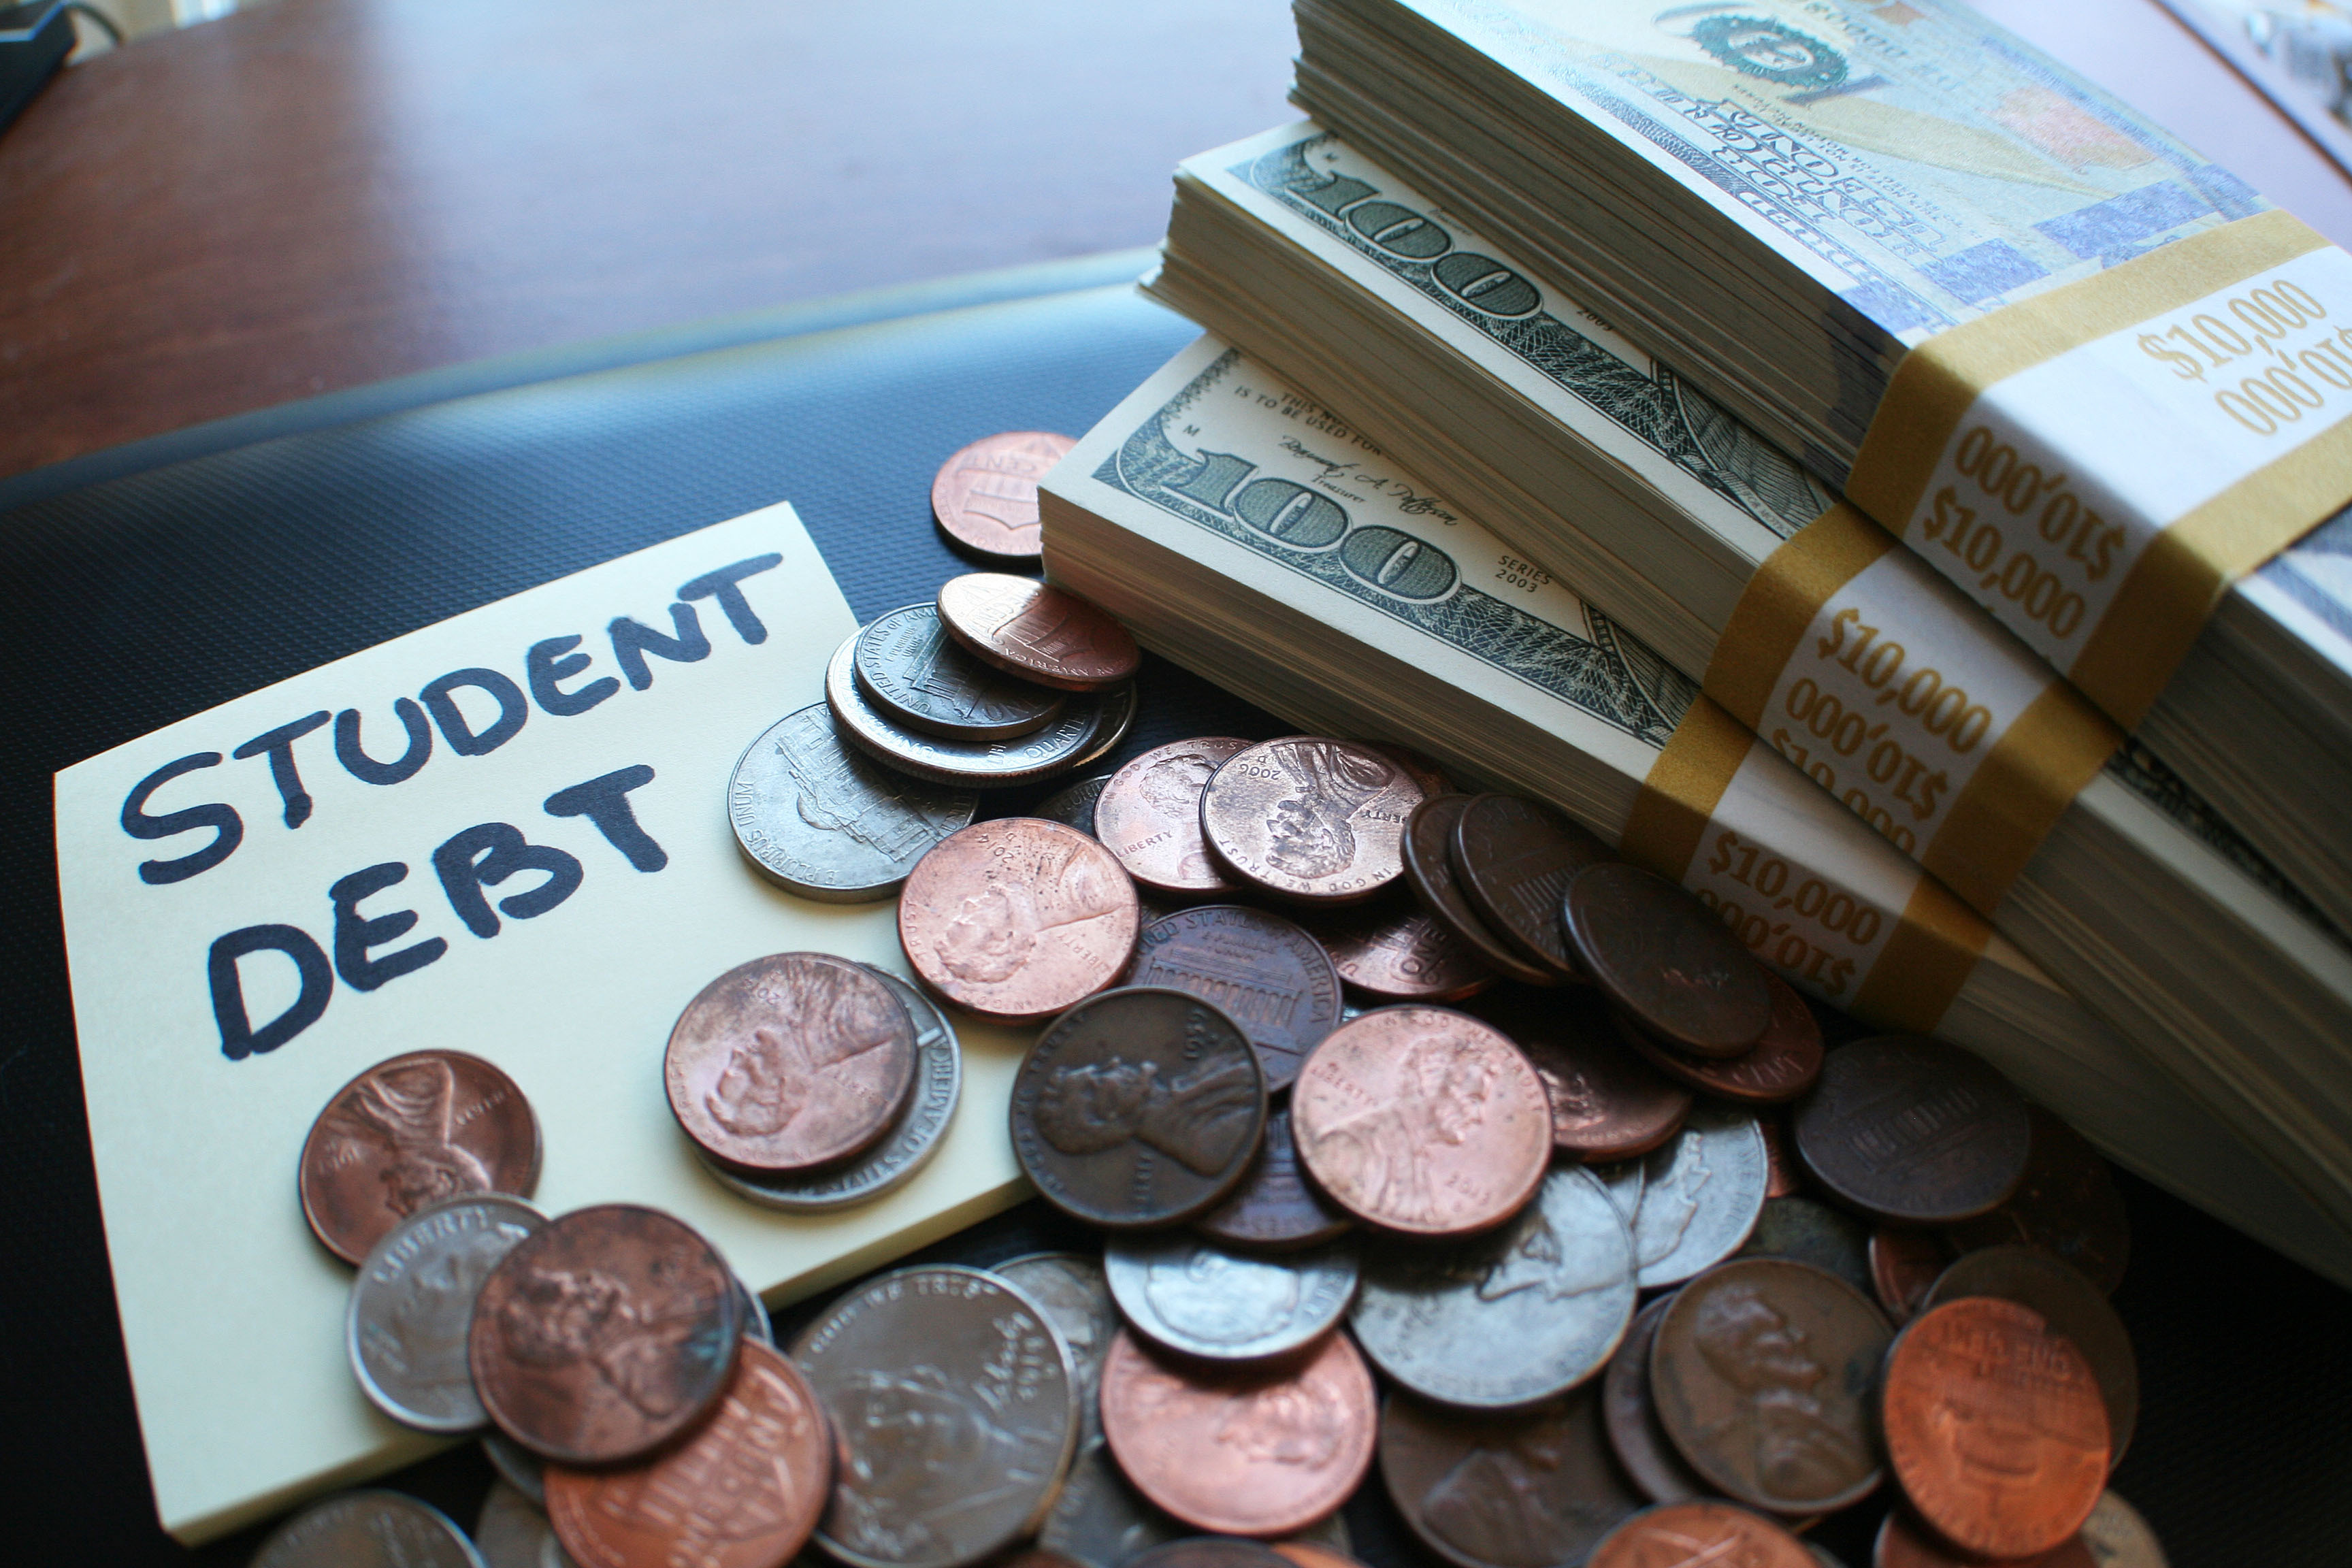 Pictured is a depiction of student debt. SHUTTERSTOCK/ ShutterstockProfessional